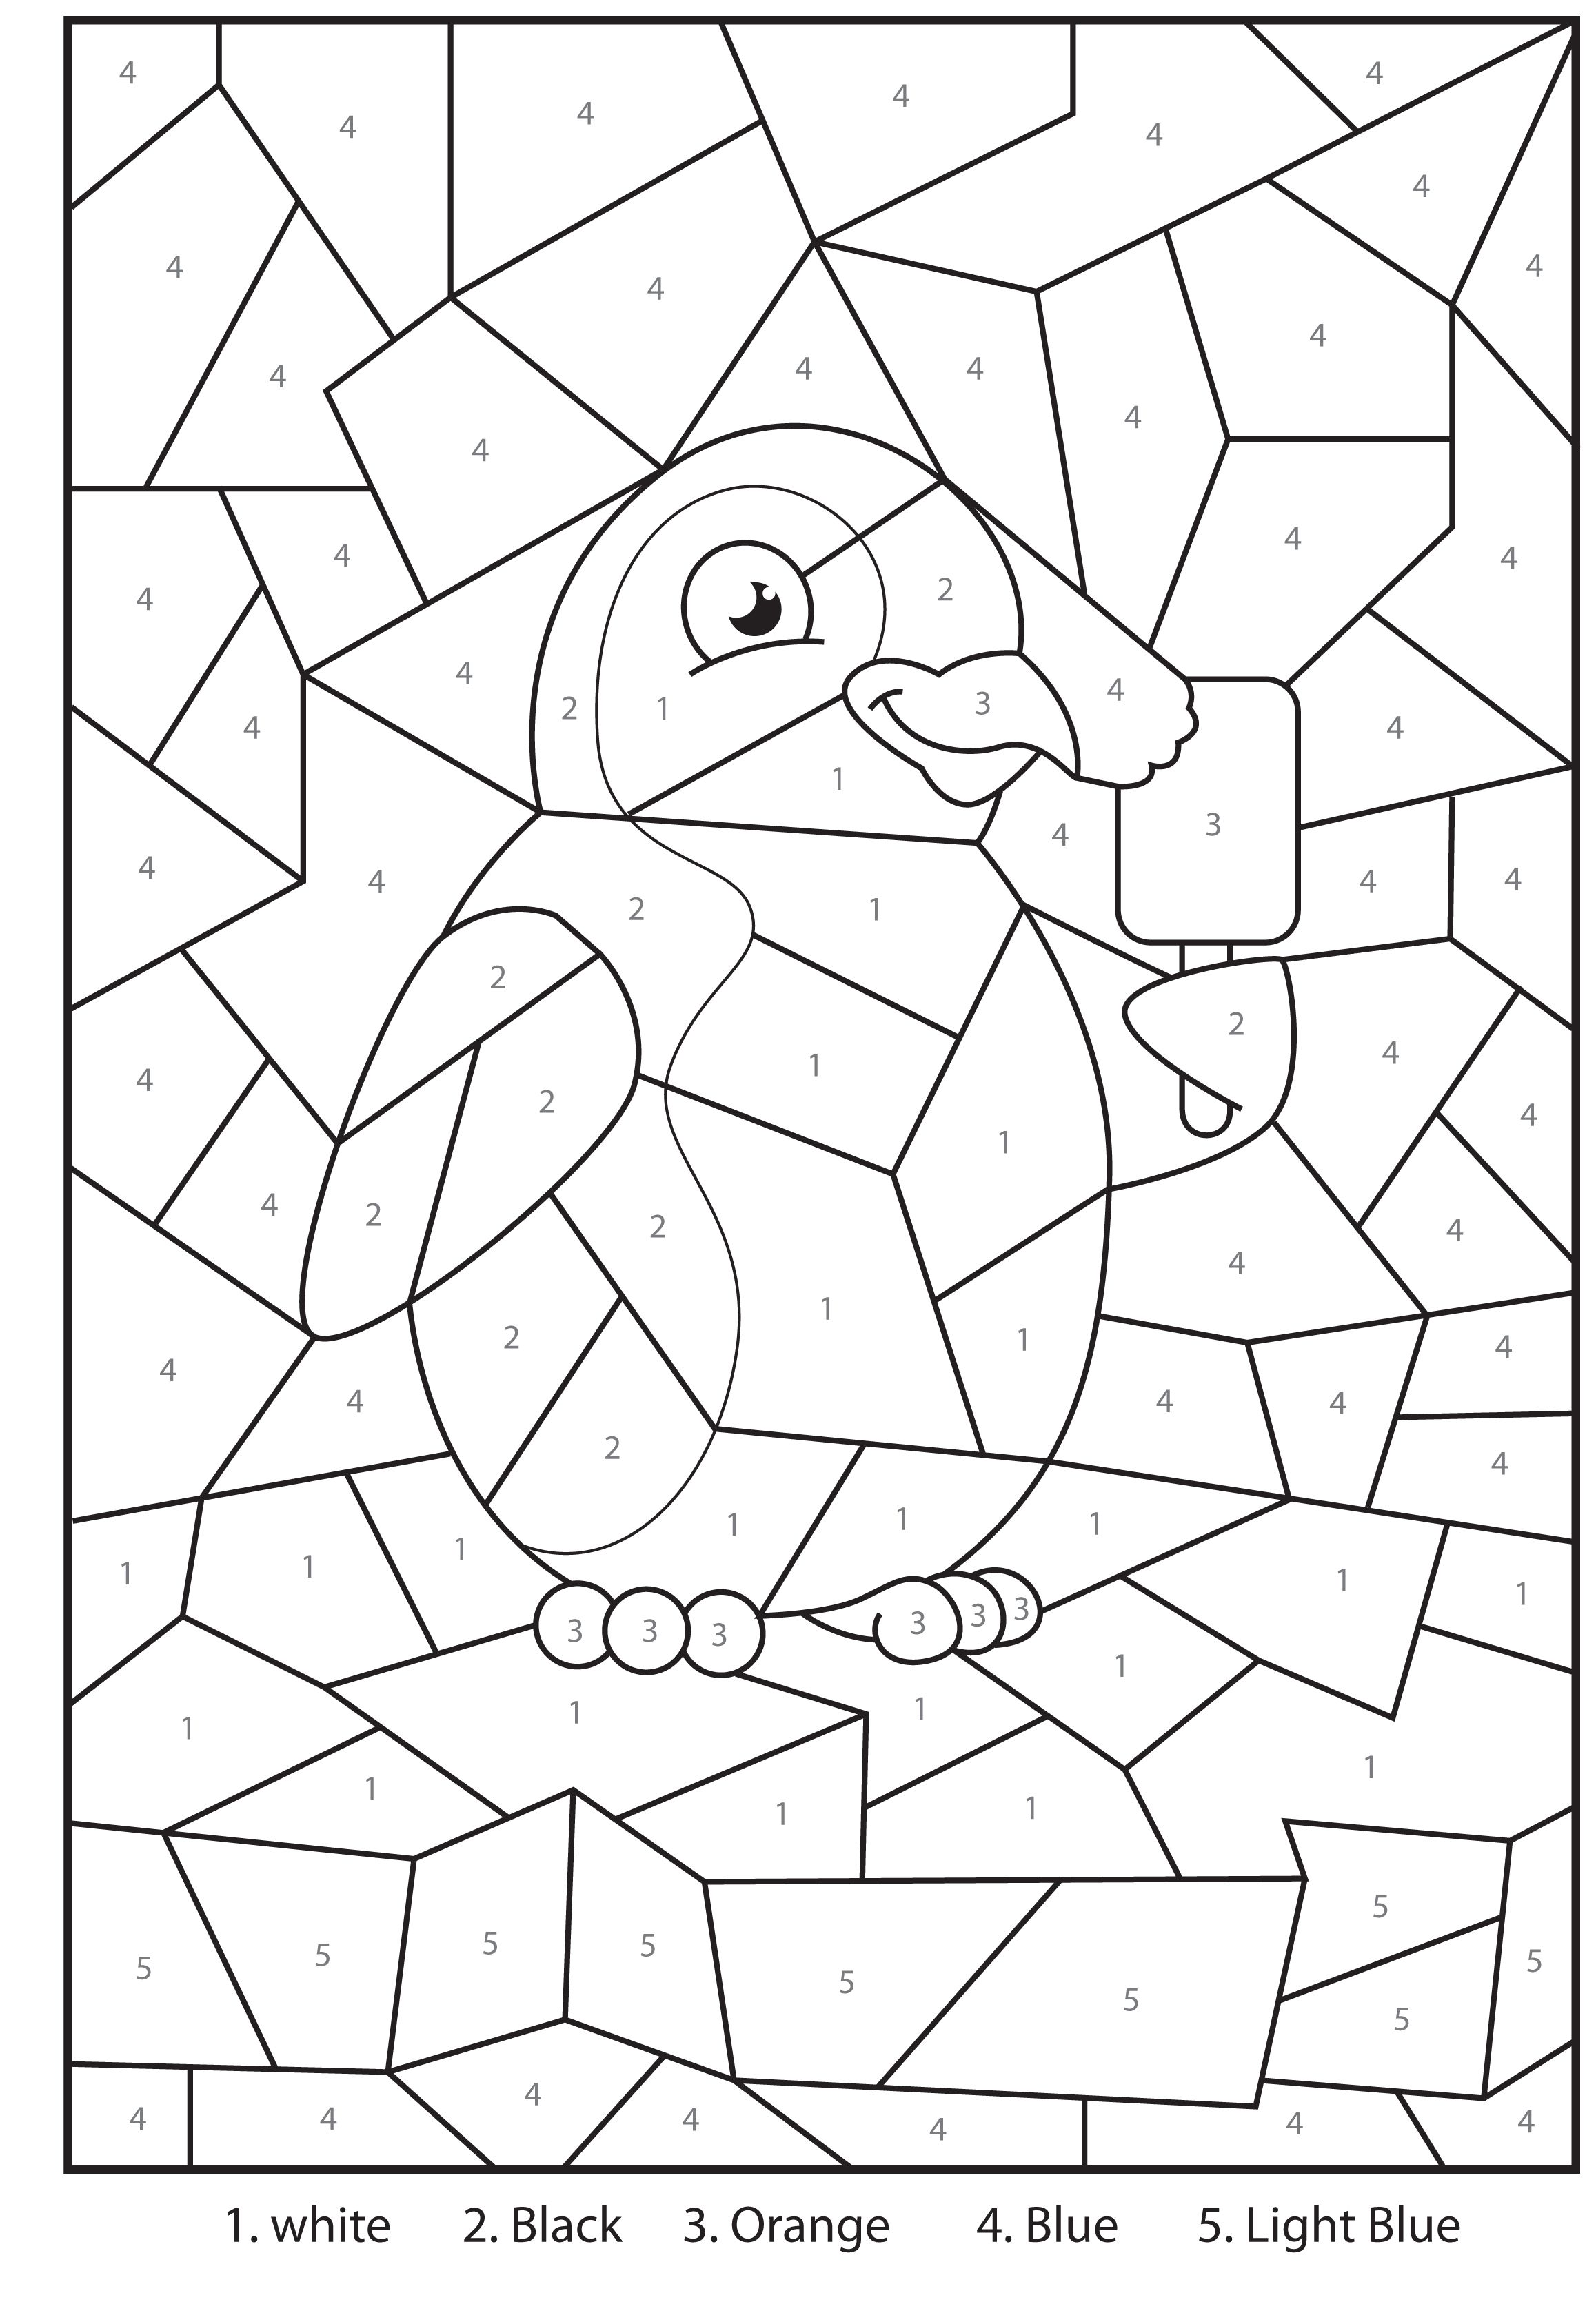 Free Printable Penguin At The Zoo Colour By Numbers Activity For